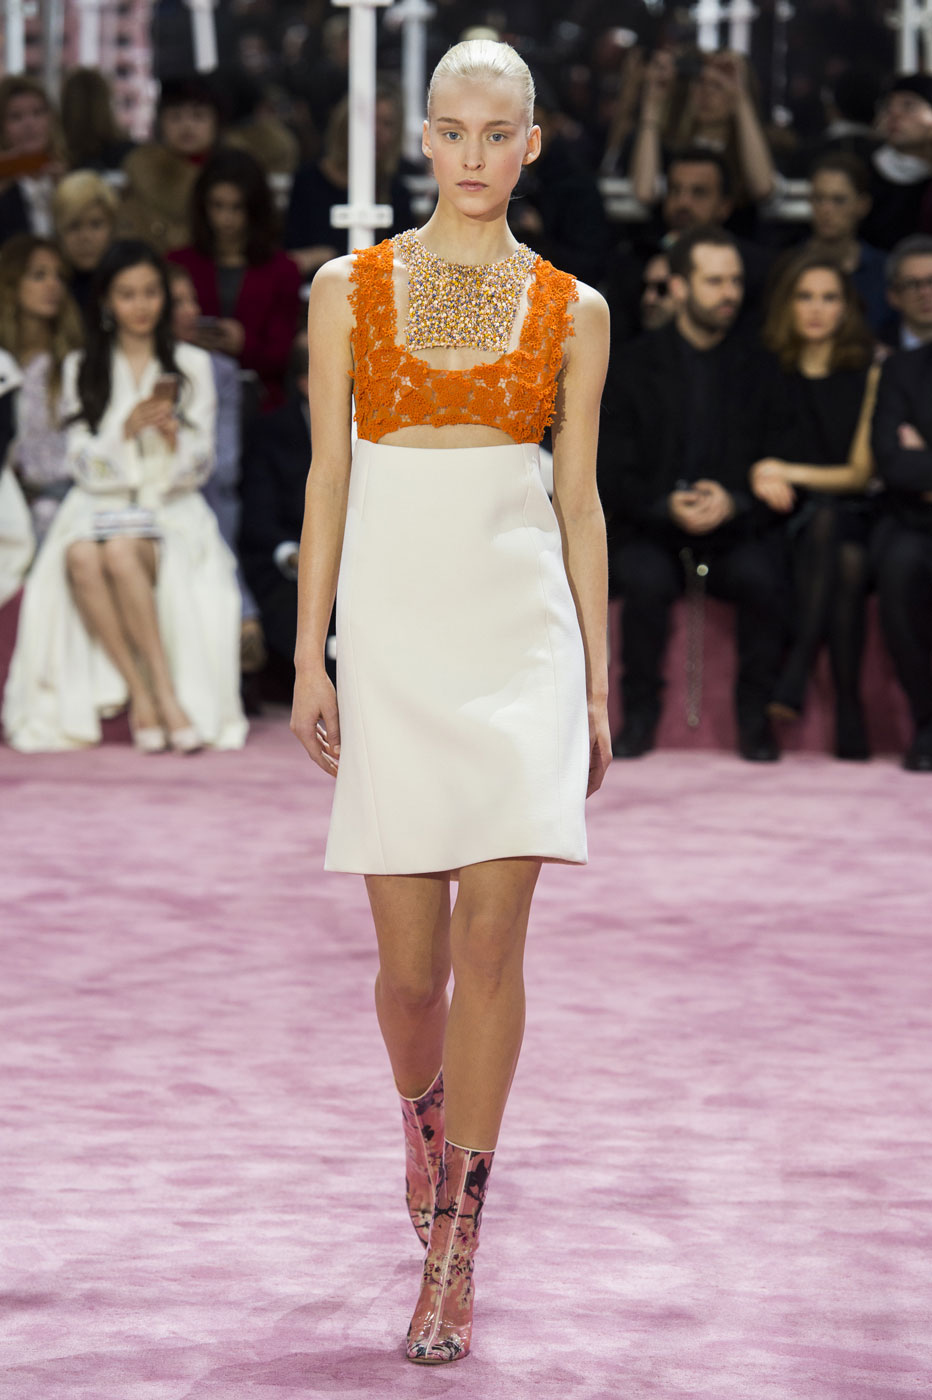 Christian-Dior-fashion-runway-show-haute-couture-paris-spring-summer-2015-the-impression-041